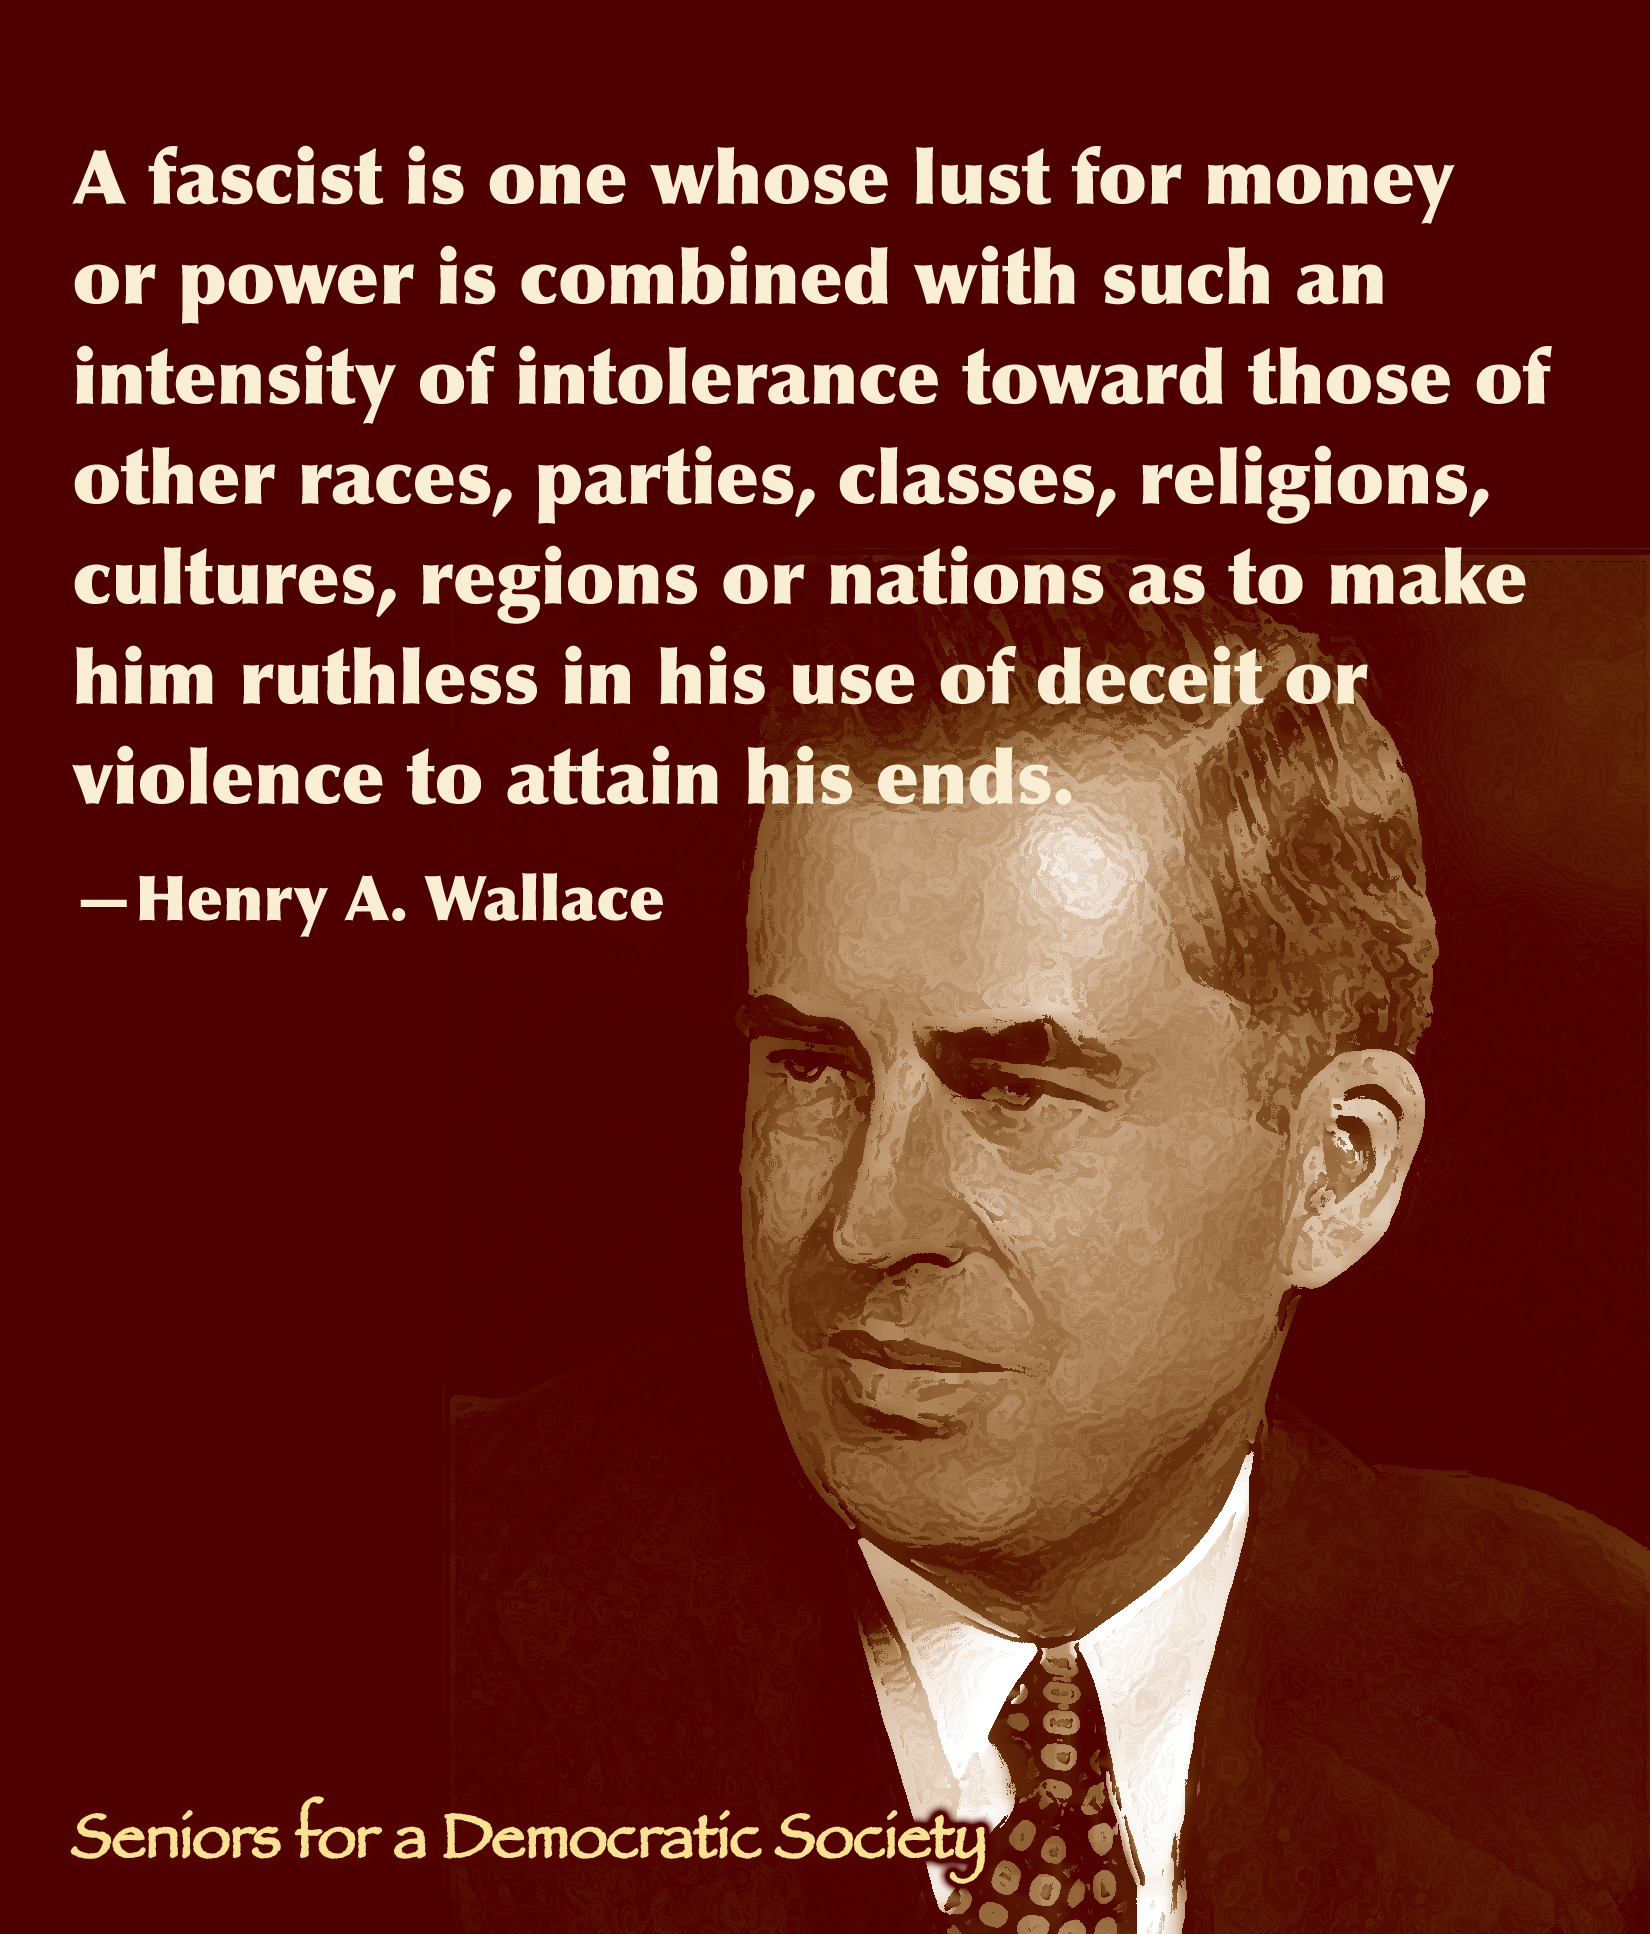 Henry A. Wallace's quote #7